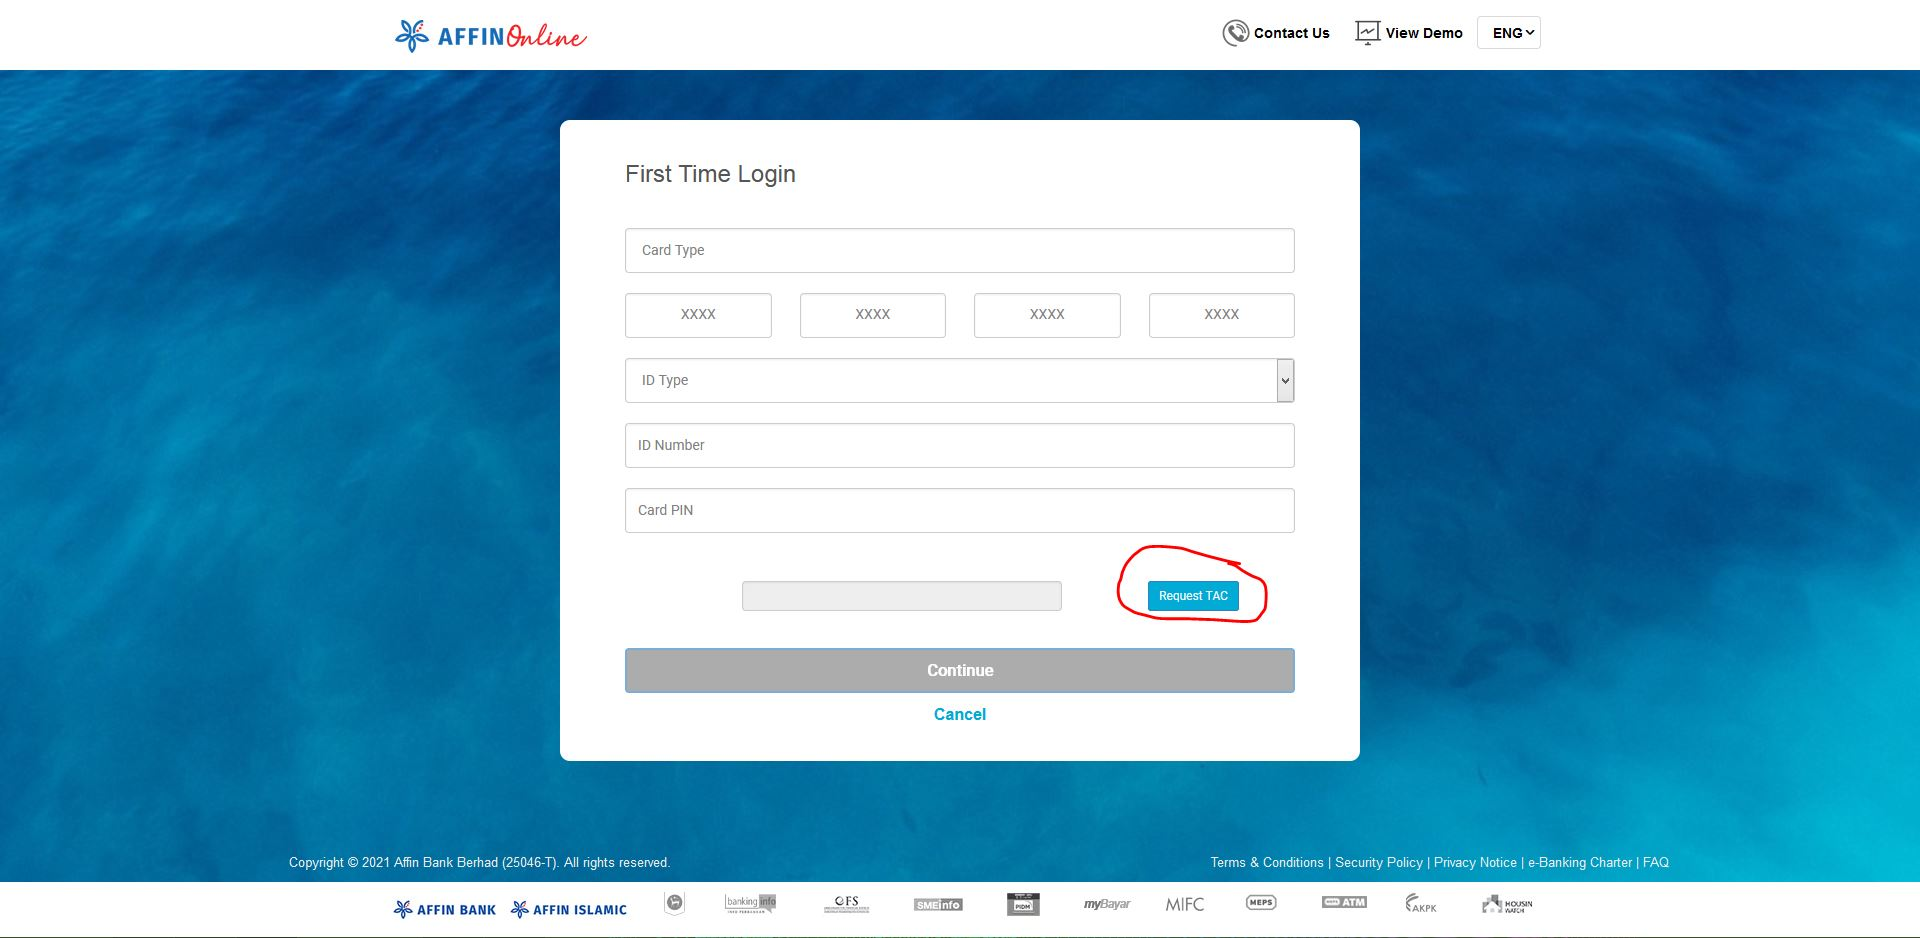 How to Login First Time in Affin Bank Online Banking using AffinOnline